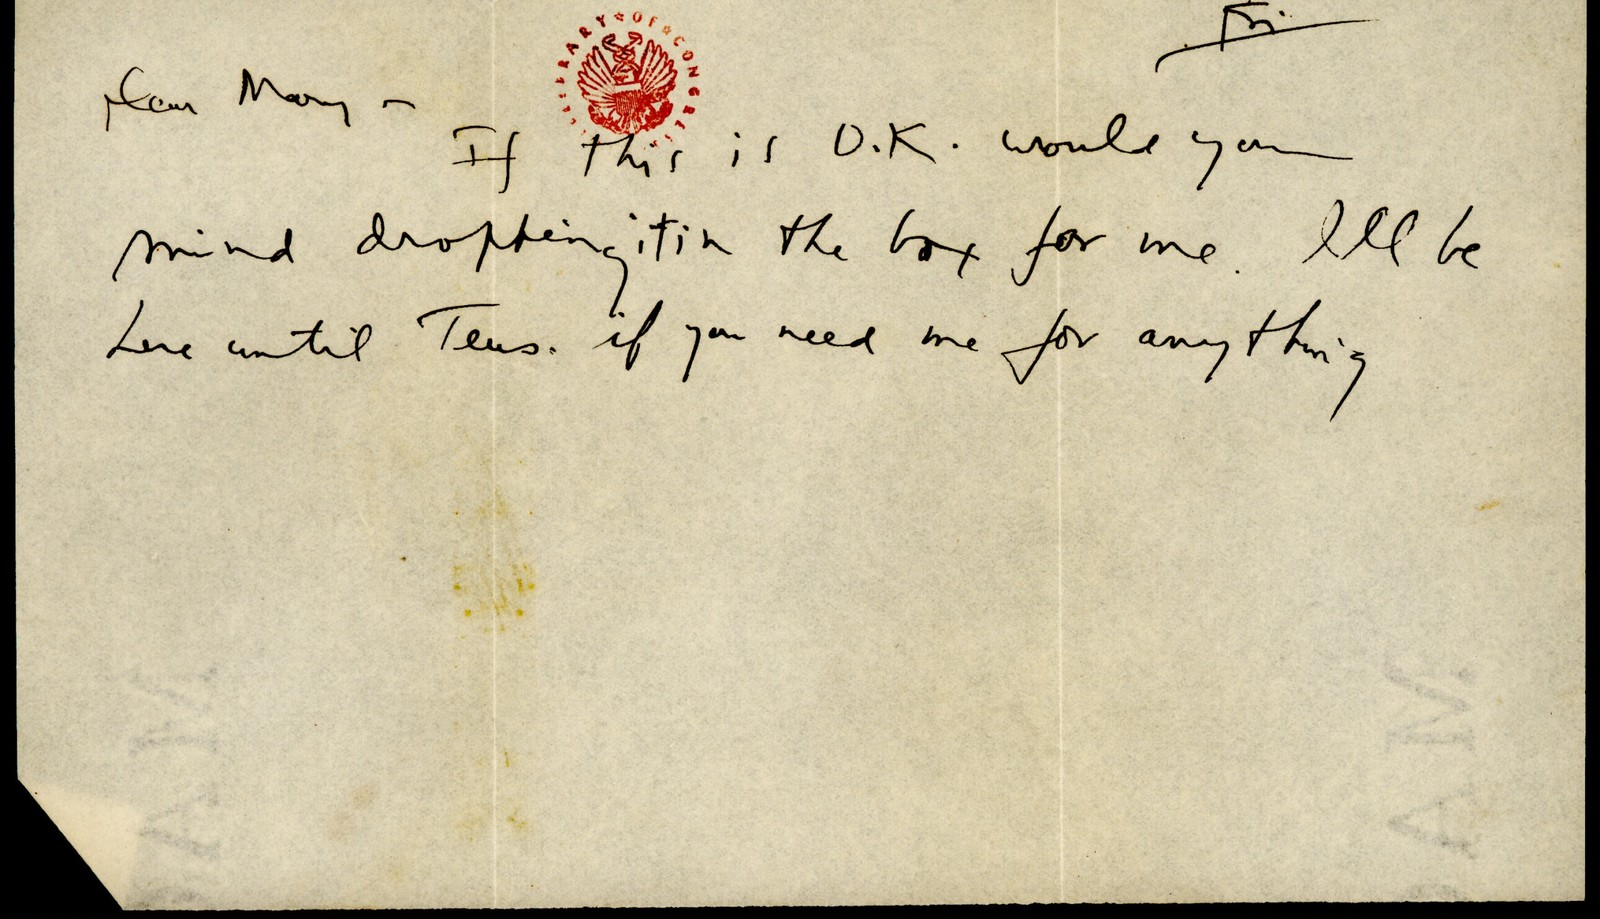 Letter from Aaron Copland to Mary Lescaze, 1930.